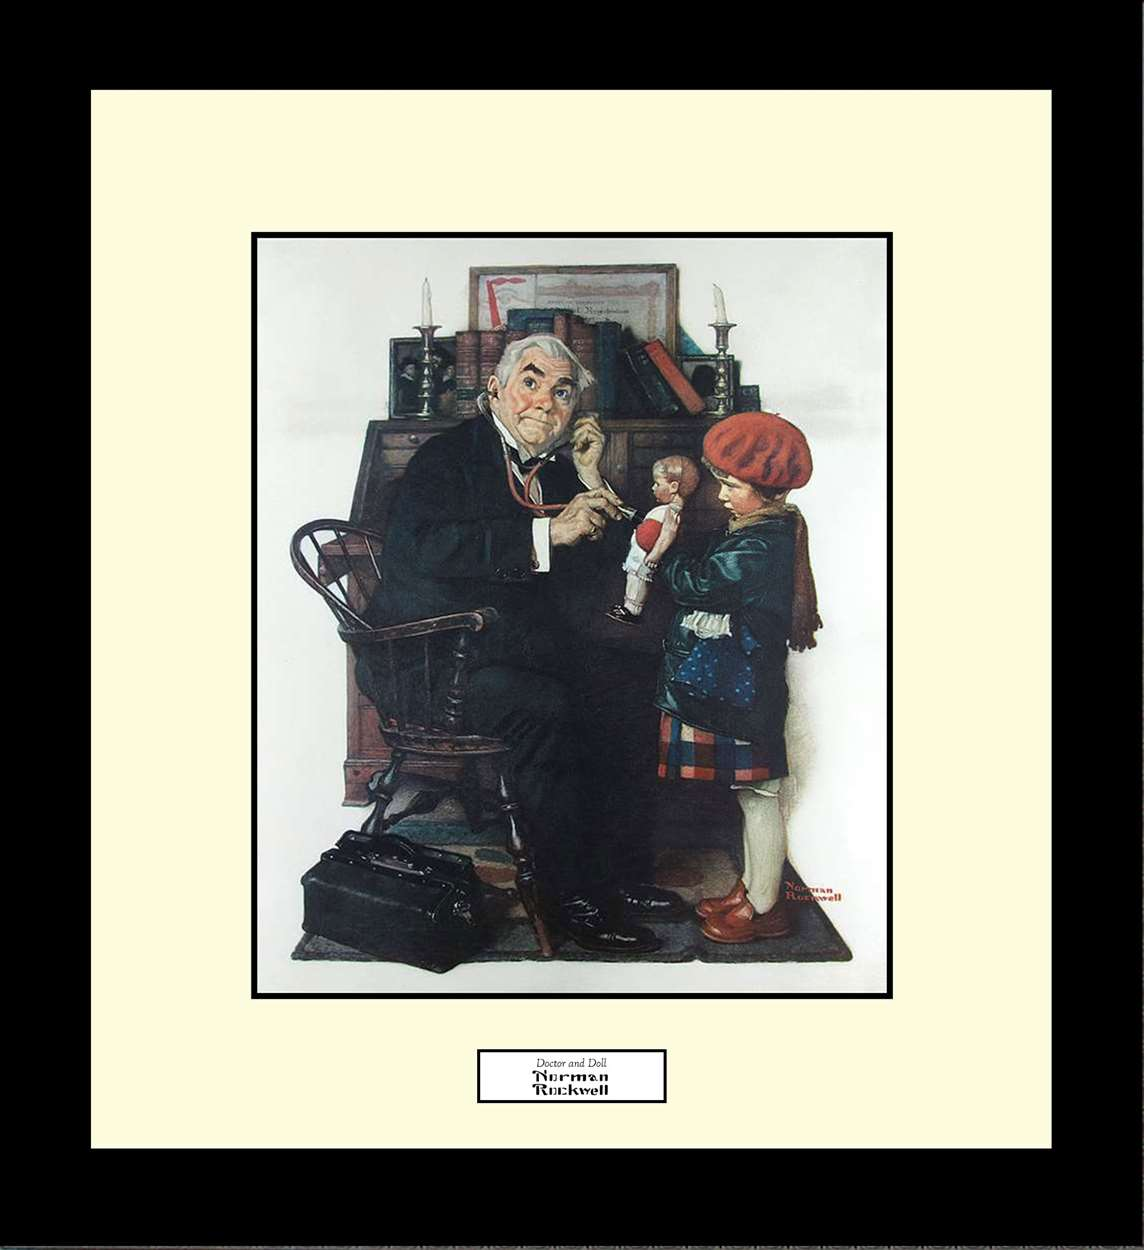 Doctor and Doll, Norman Rockwell, 16x18